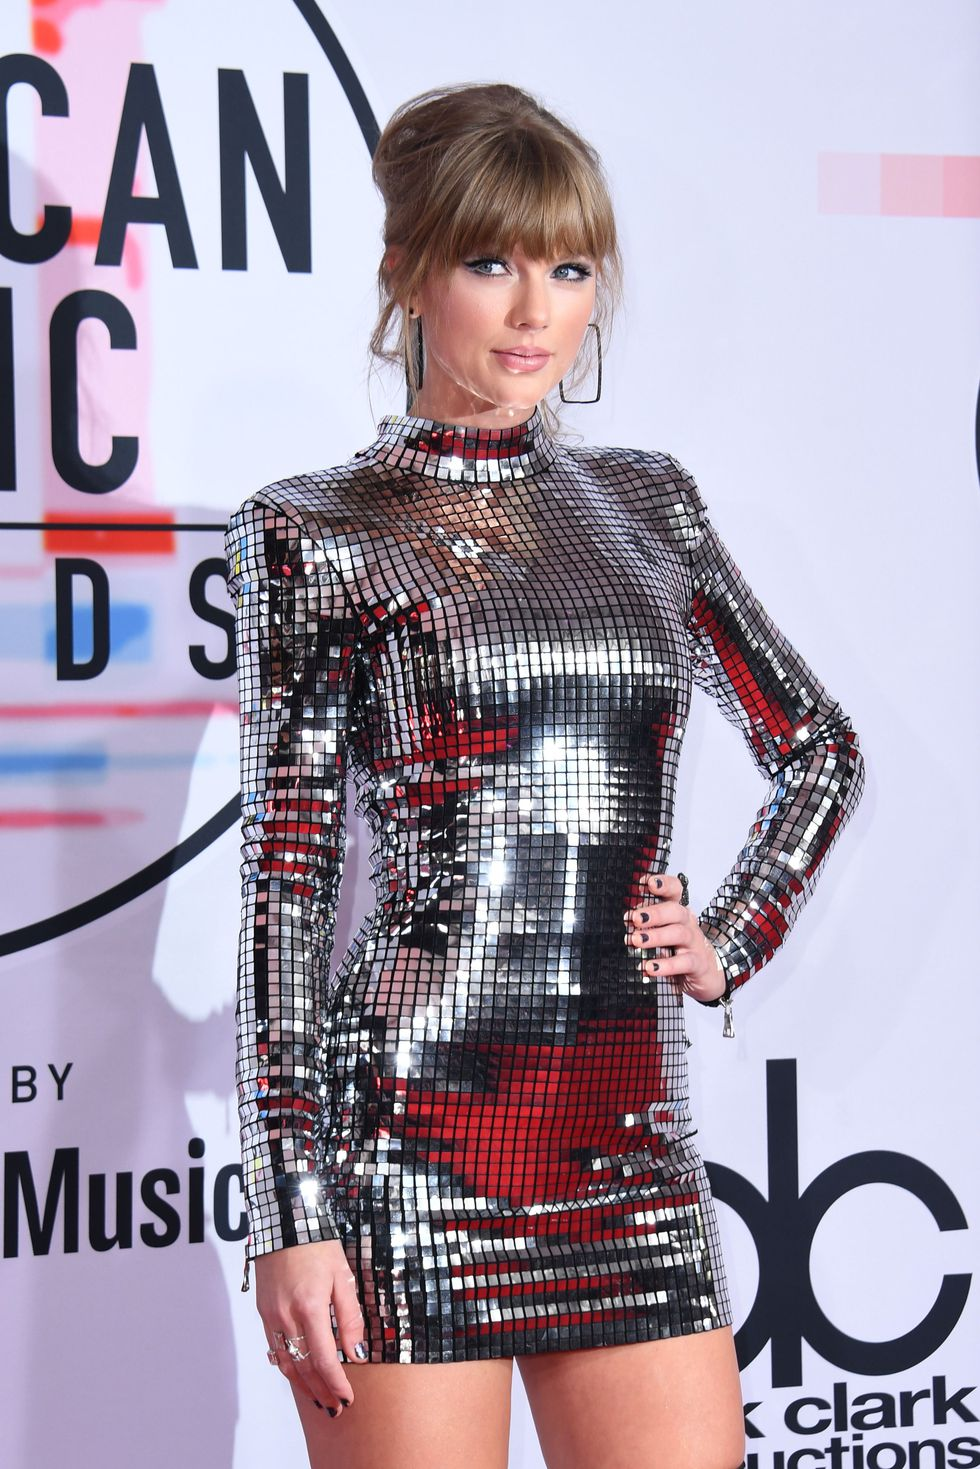 singer-taylor-swift-arrives-at-the-2018-american-music-news-photo-1048355220-1539123932.jpg